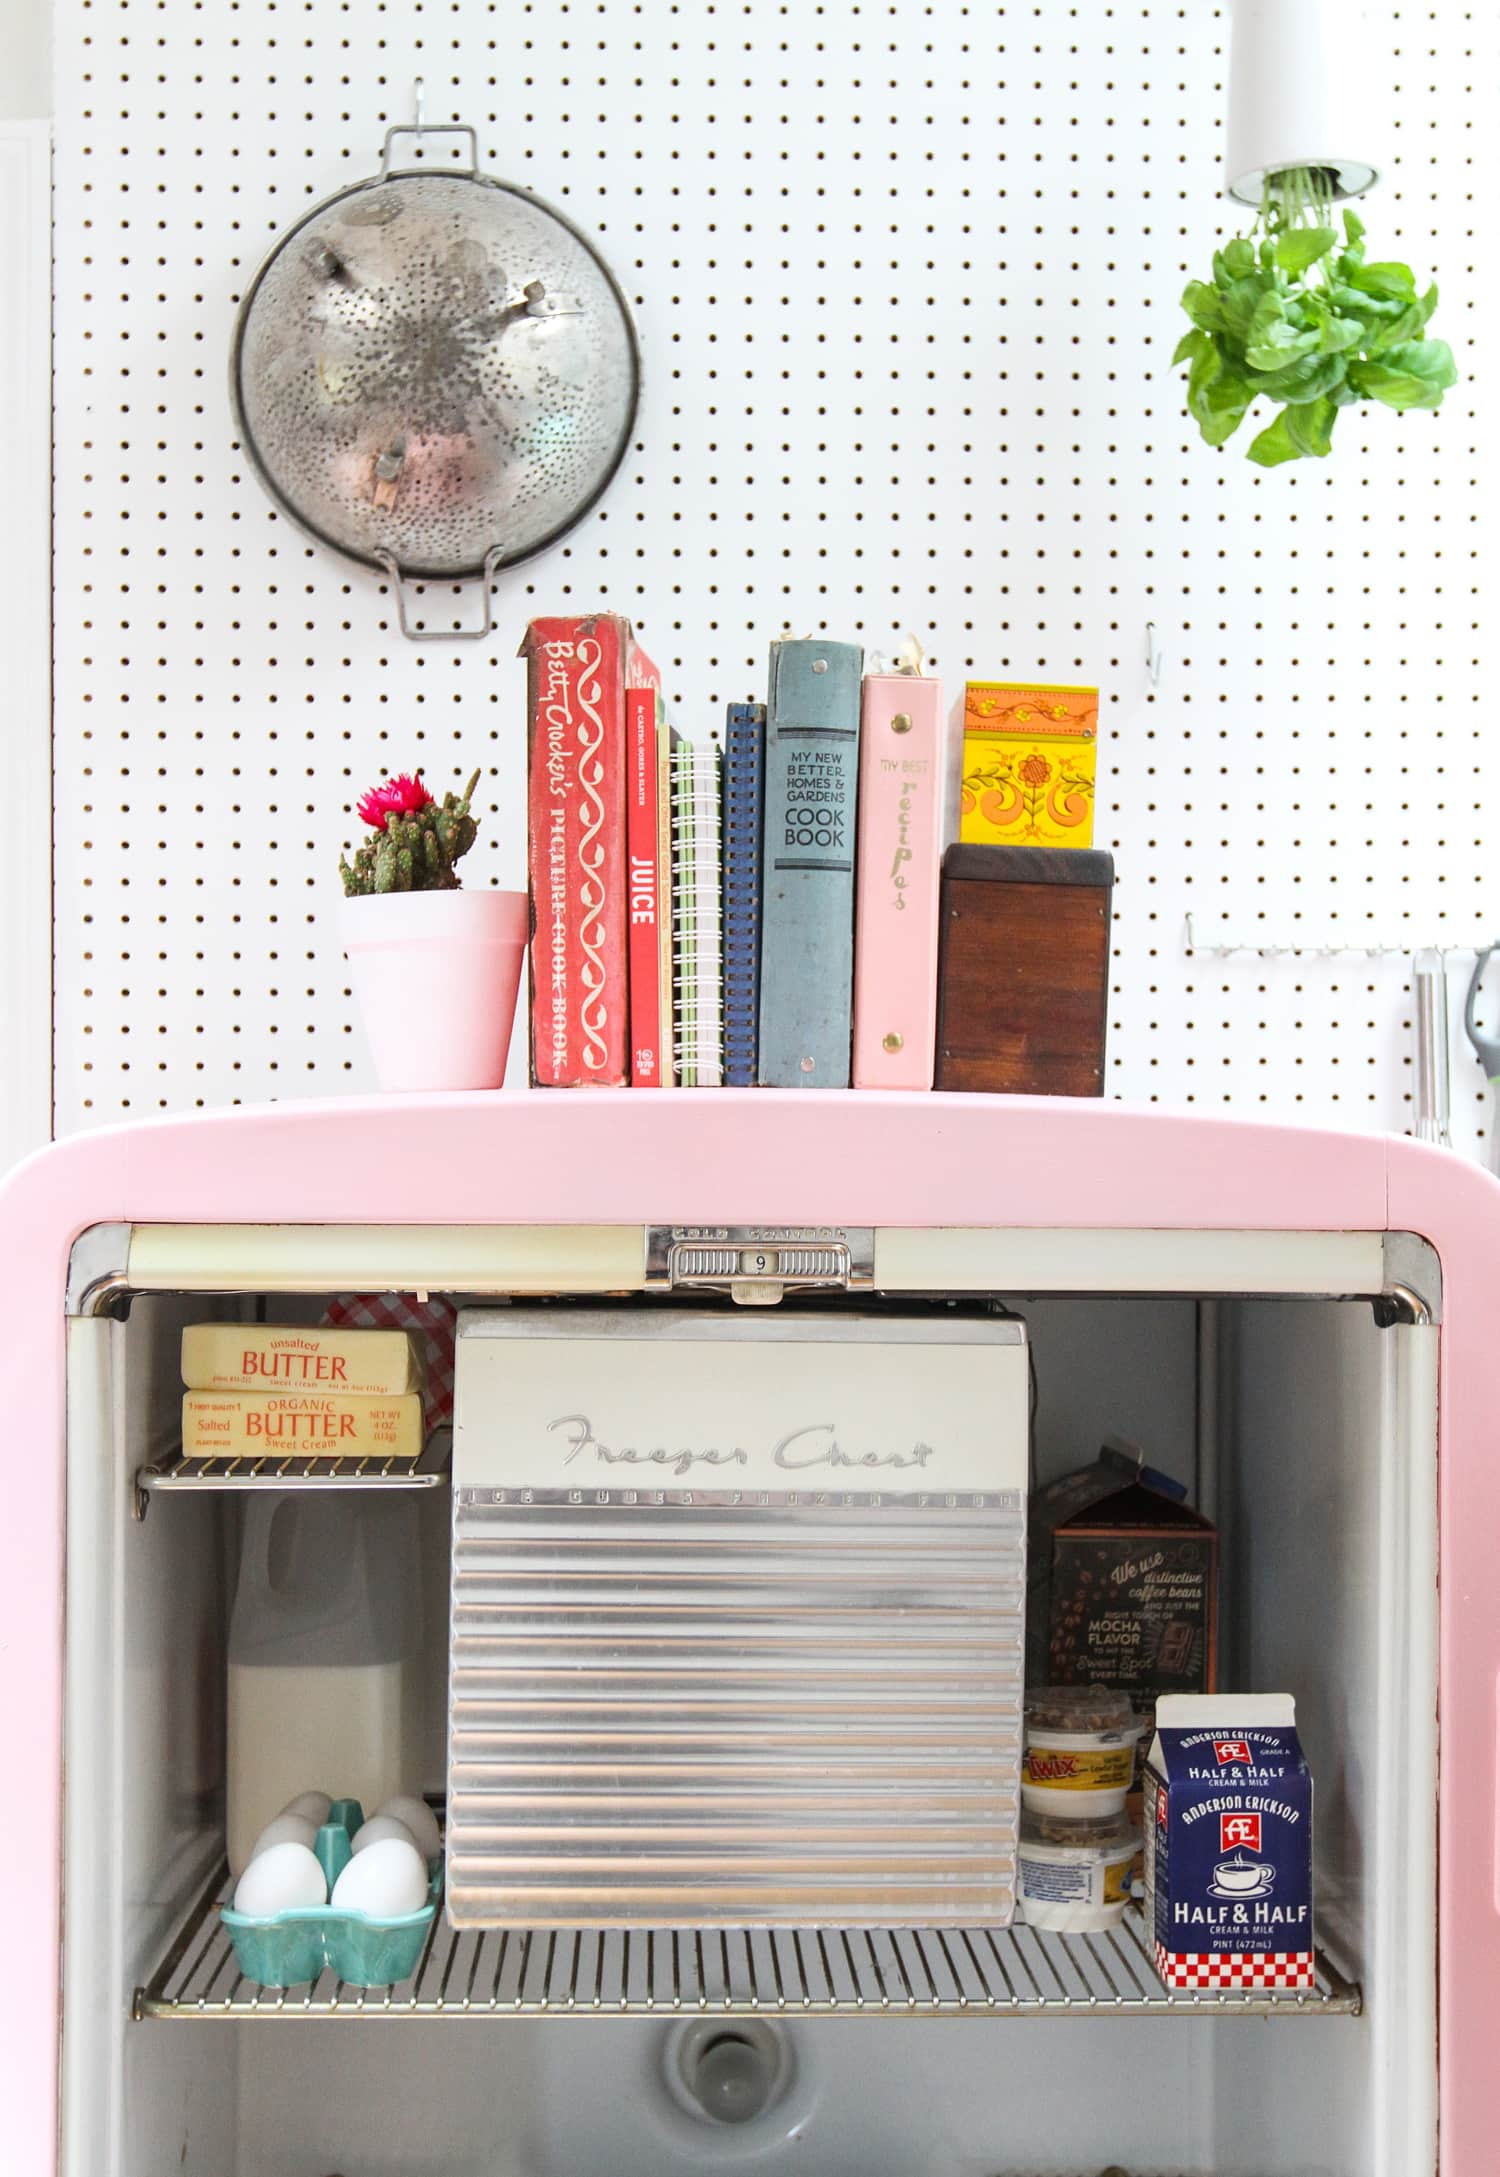 Wishing for a Colorful Smeg Fridge? Here's How To Paint a Vintage Refrigerator Instead